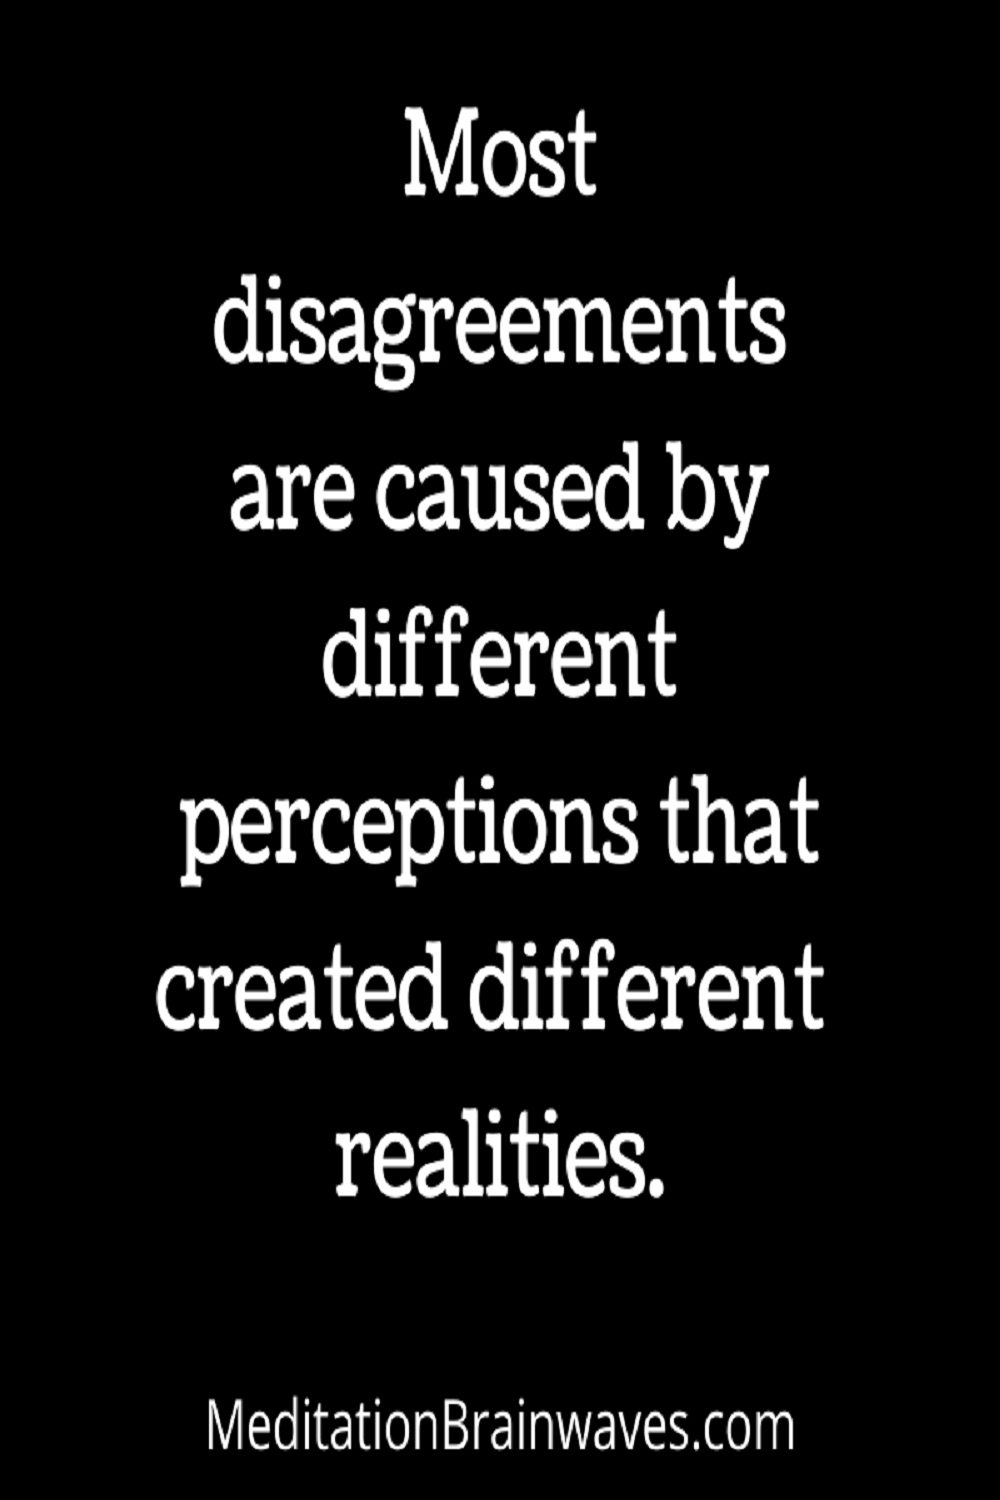 Most disagreements are caused by different perceptions that created different realities